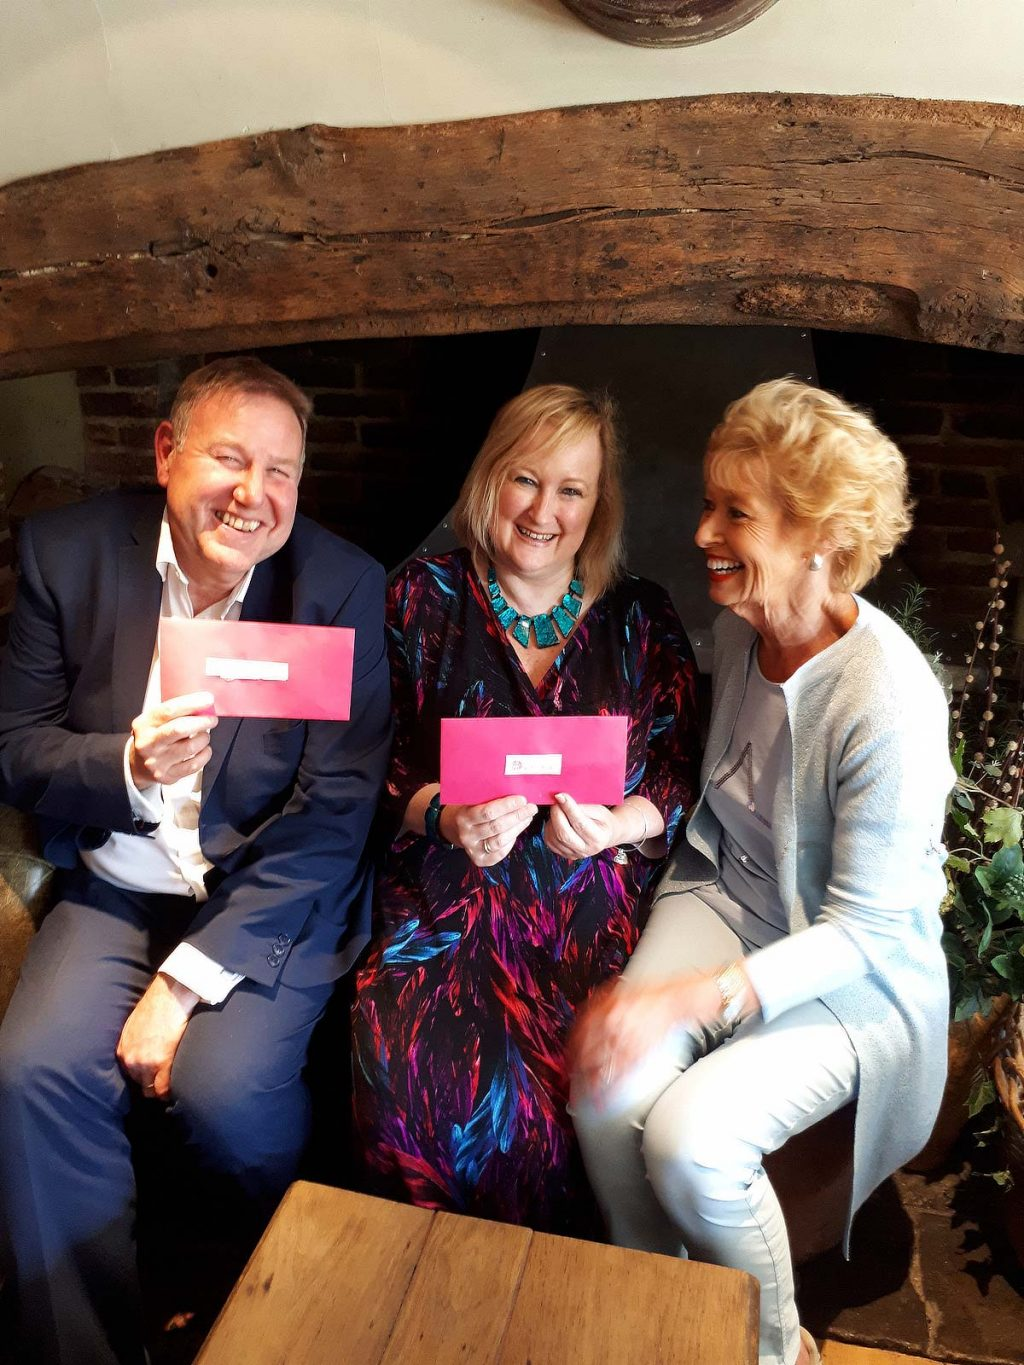 At the wonderful Onlsow Arms in West Clandon, Charlotte met Chris from Eikon and Tania and Lucy from Meath with not one, but two pink envelopes.